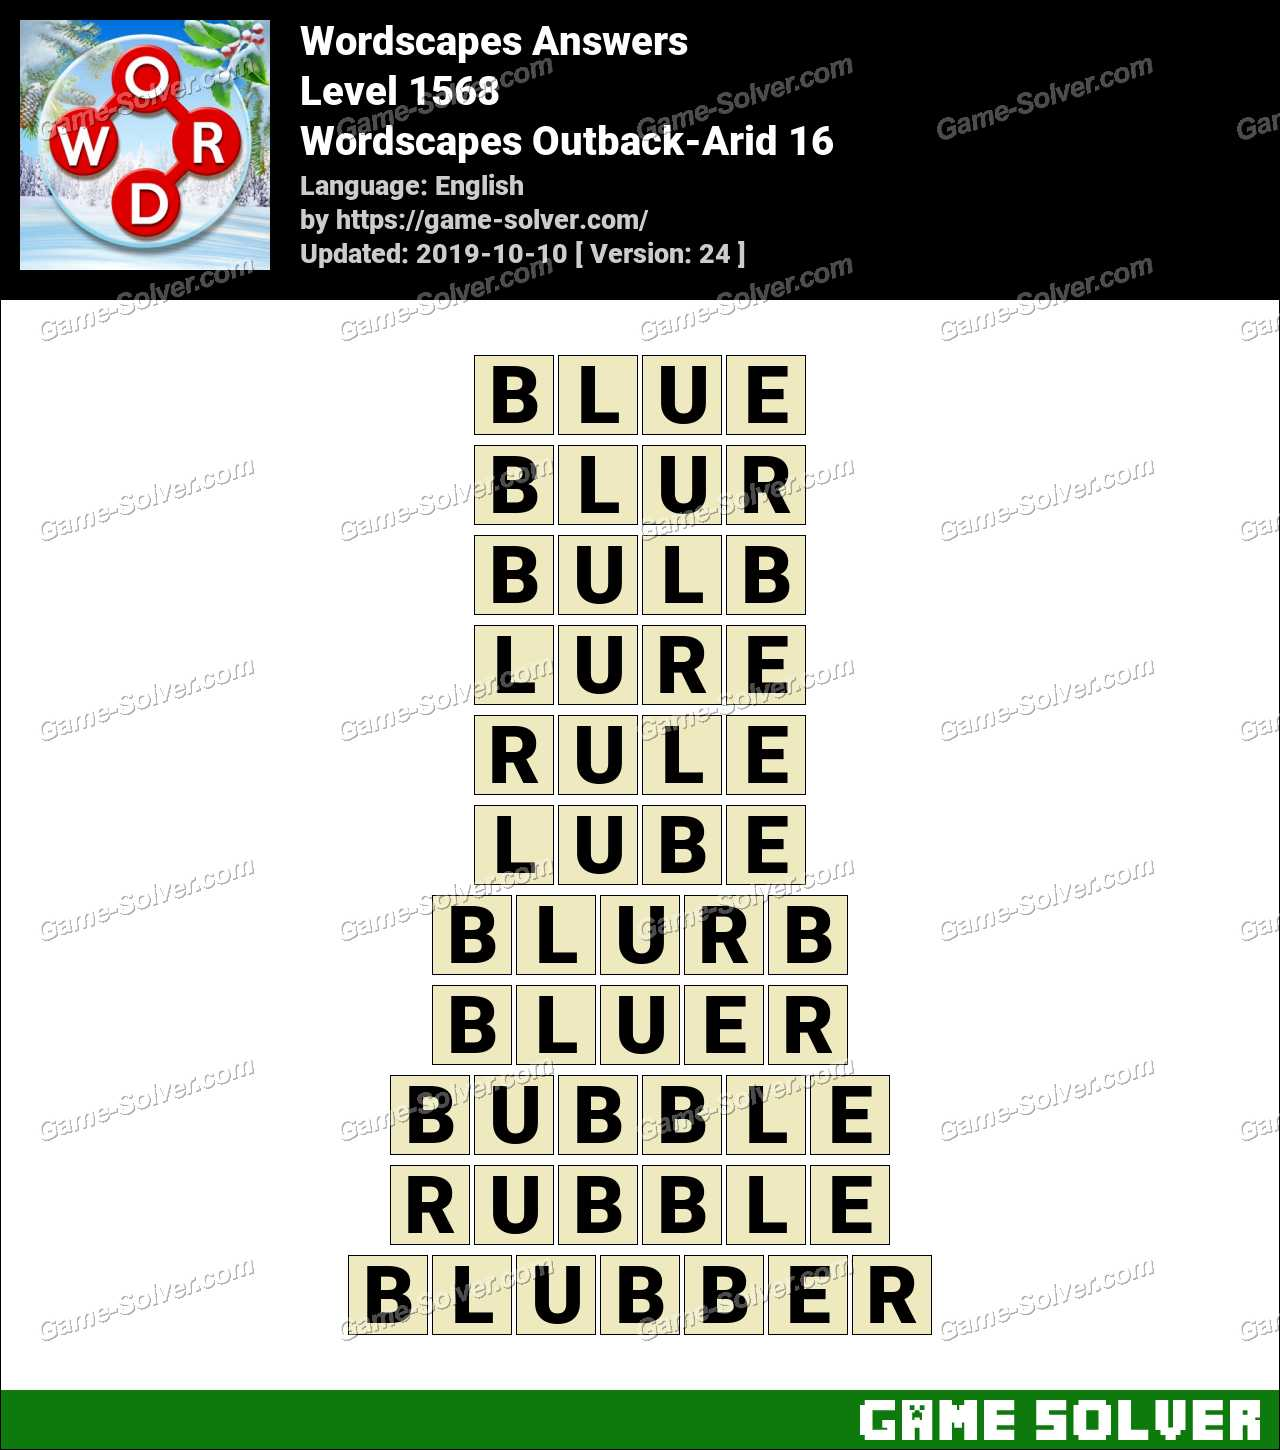 Wordscapes Outback-Arid 16 Answers